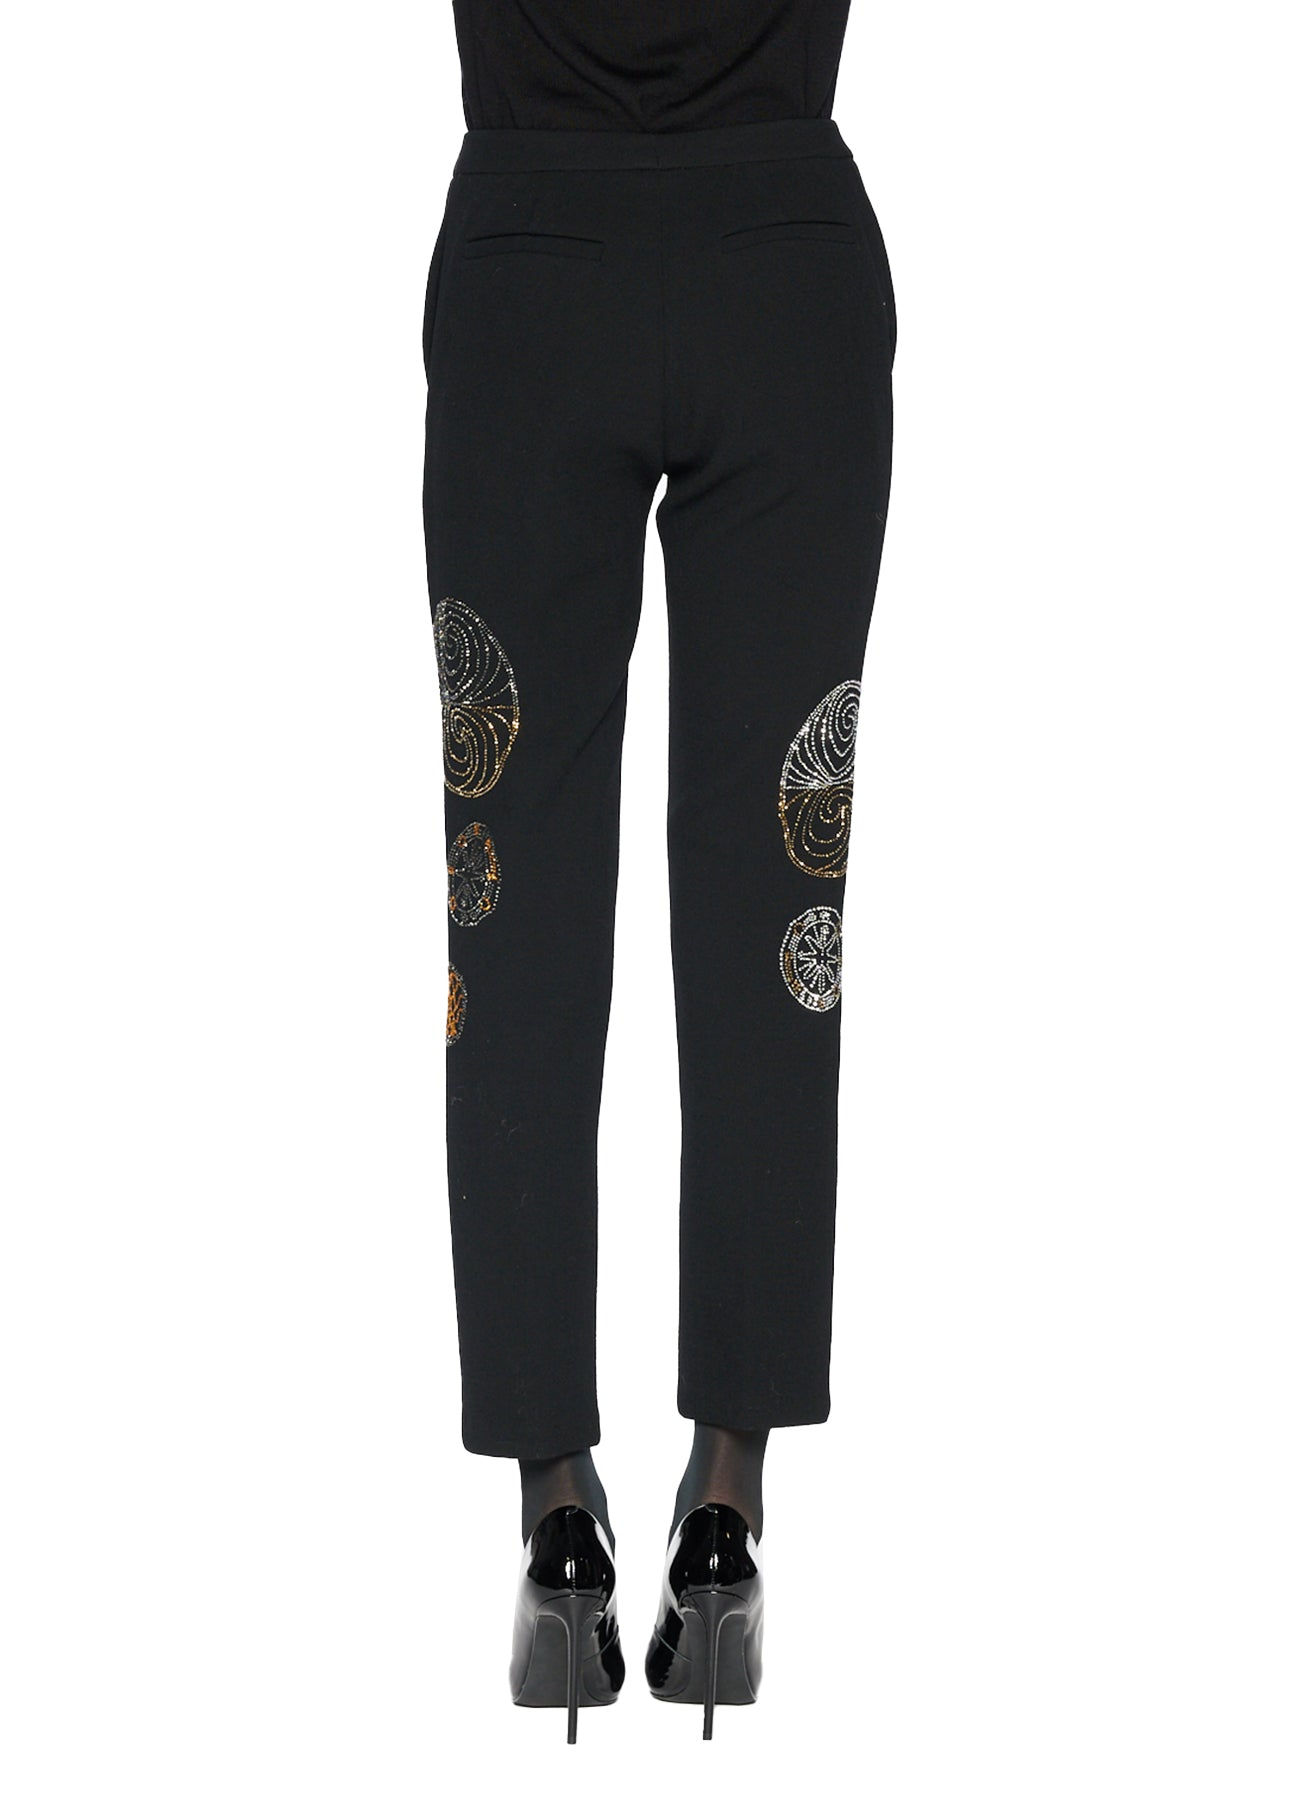 'NOUVEAU' NARROW PANT - Women's Bottoms - Libertine